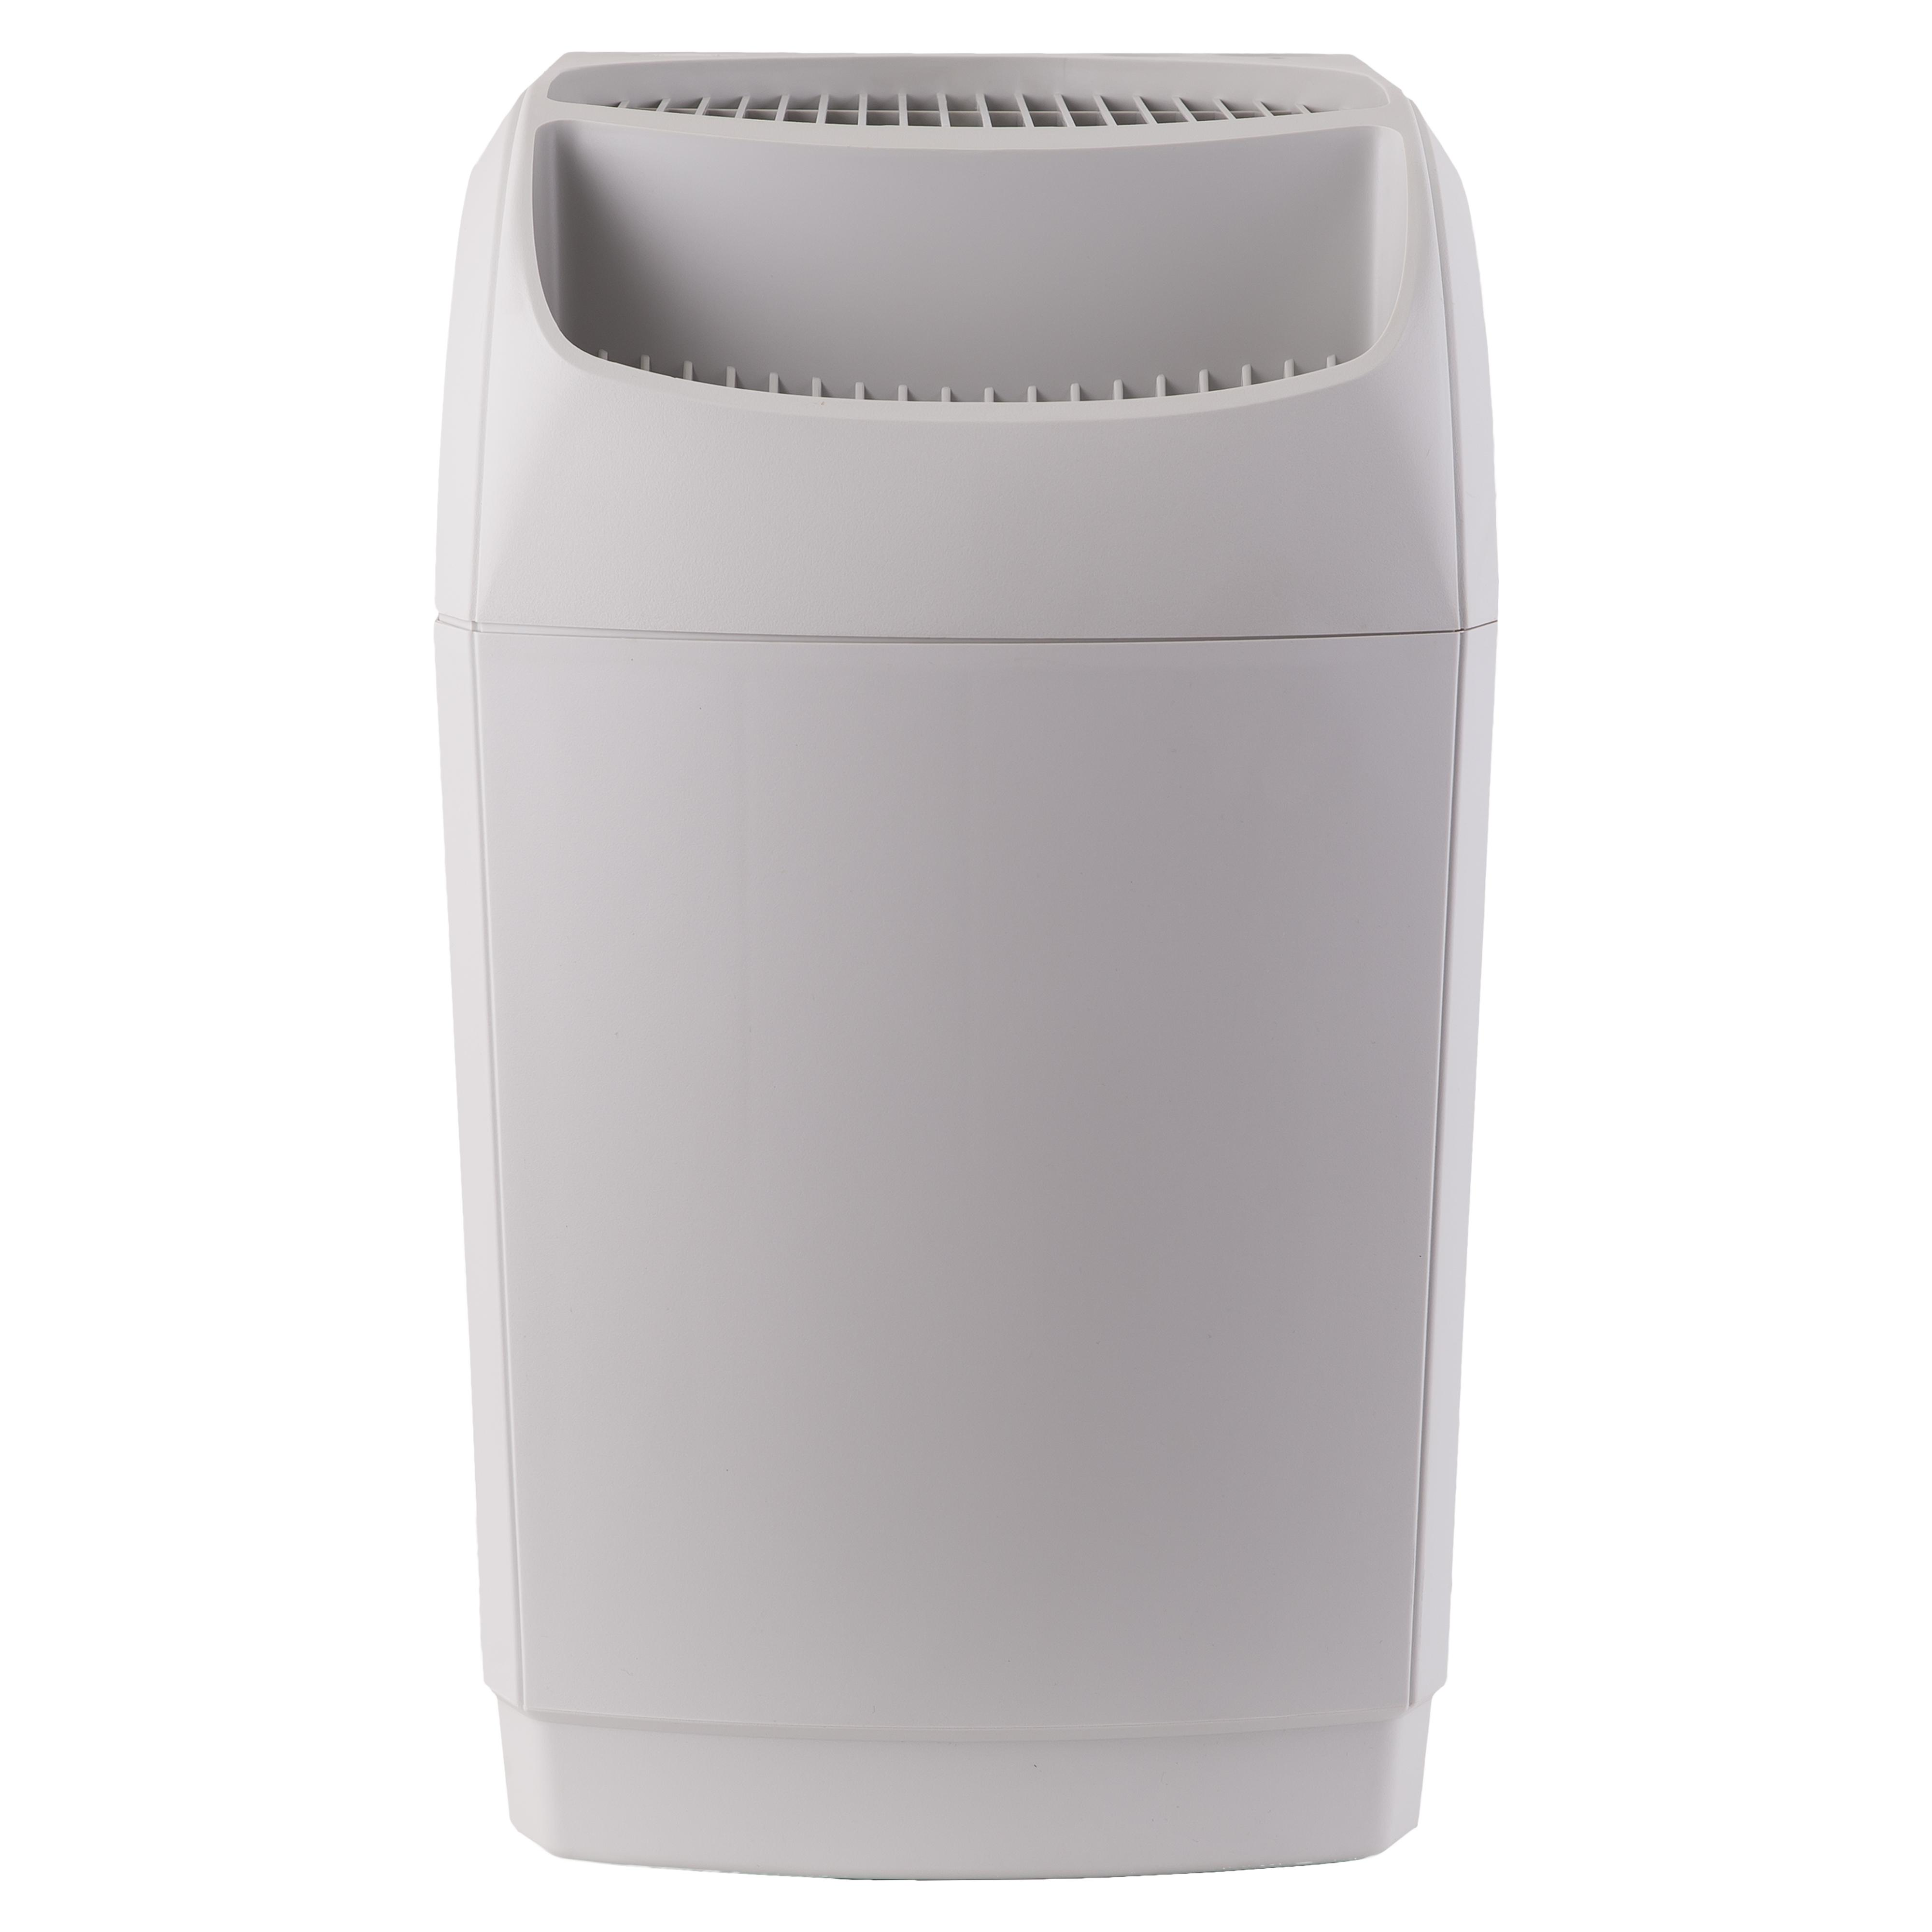 saver evaporative humidifier ss390dwht this evaporative humidifier  #67616A